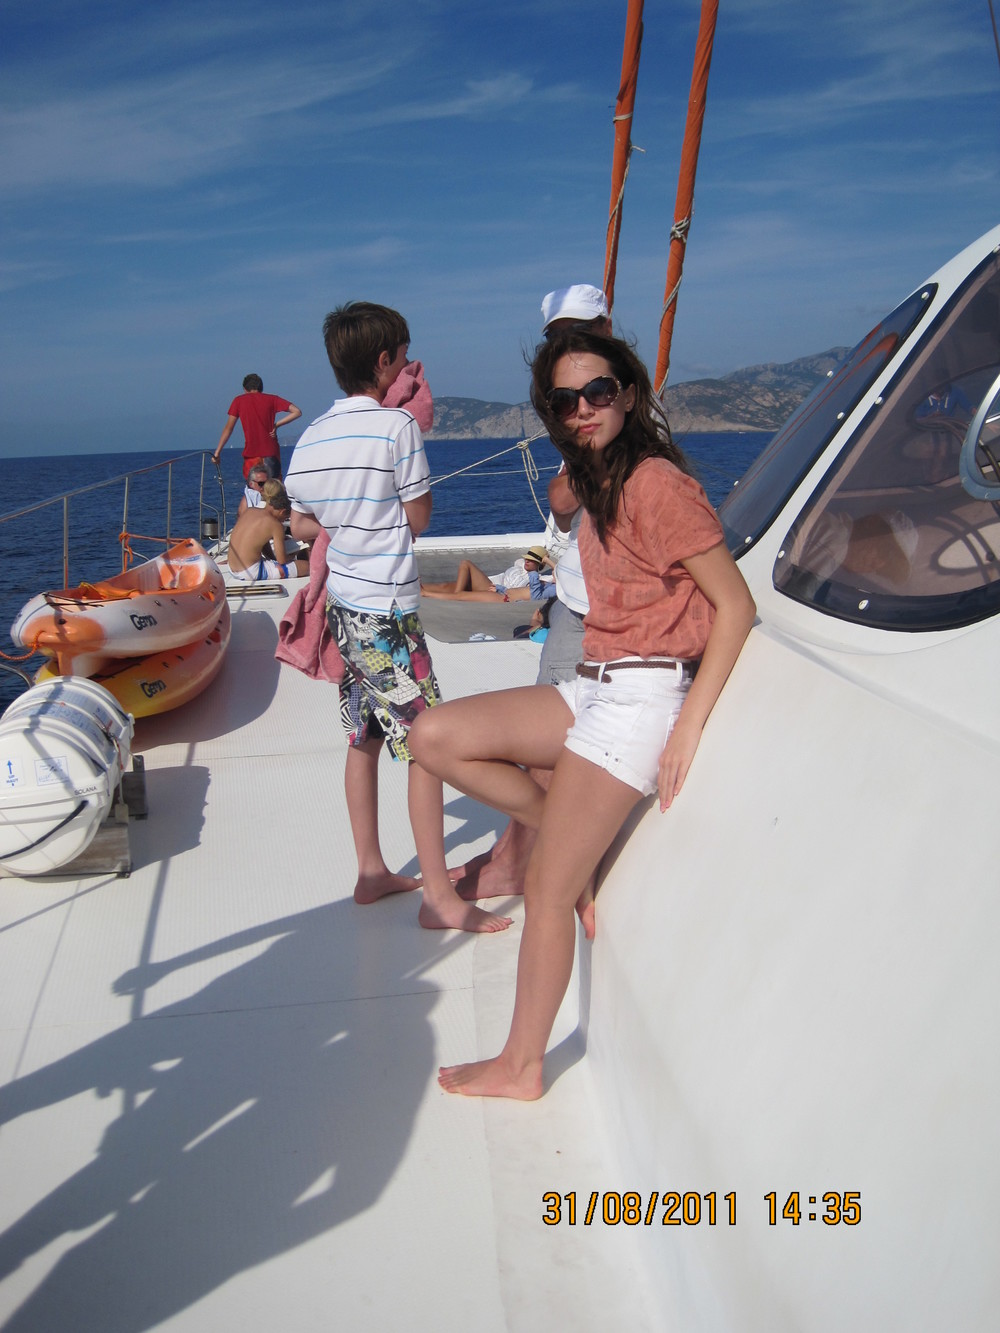 Jess on a boat trip in Corsica August 2011